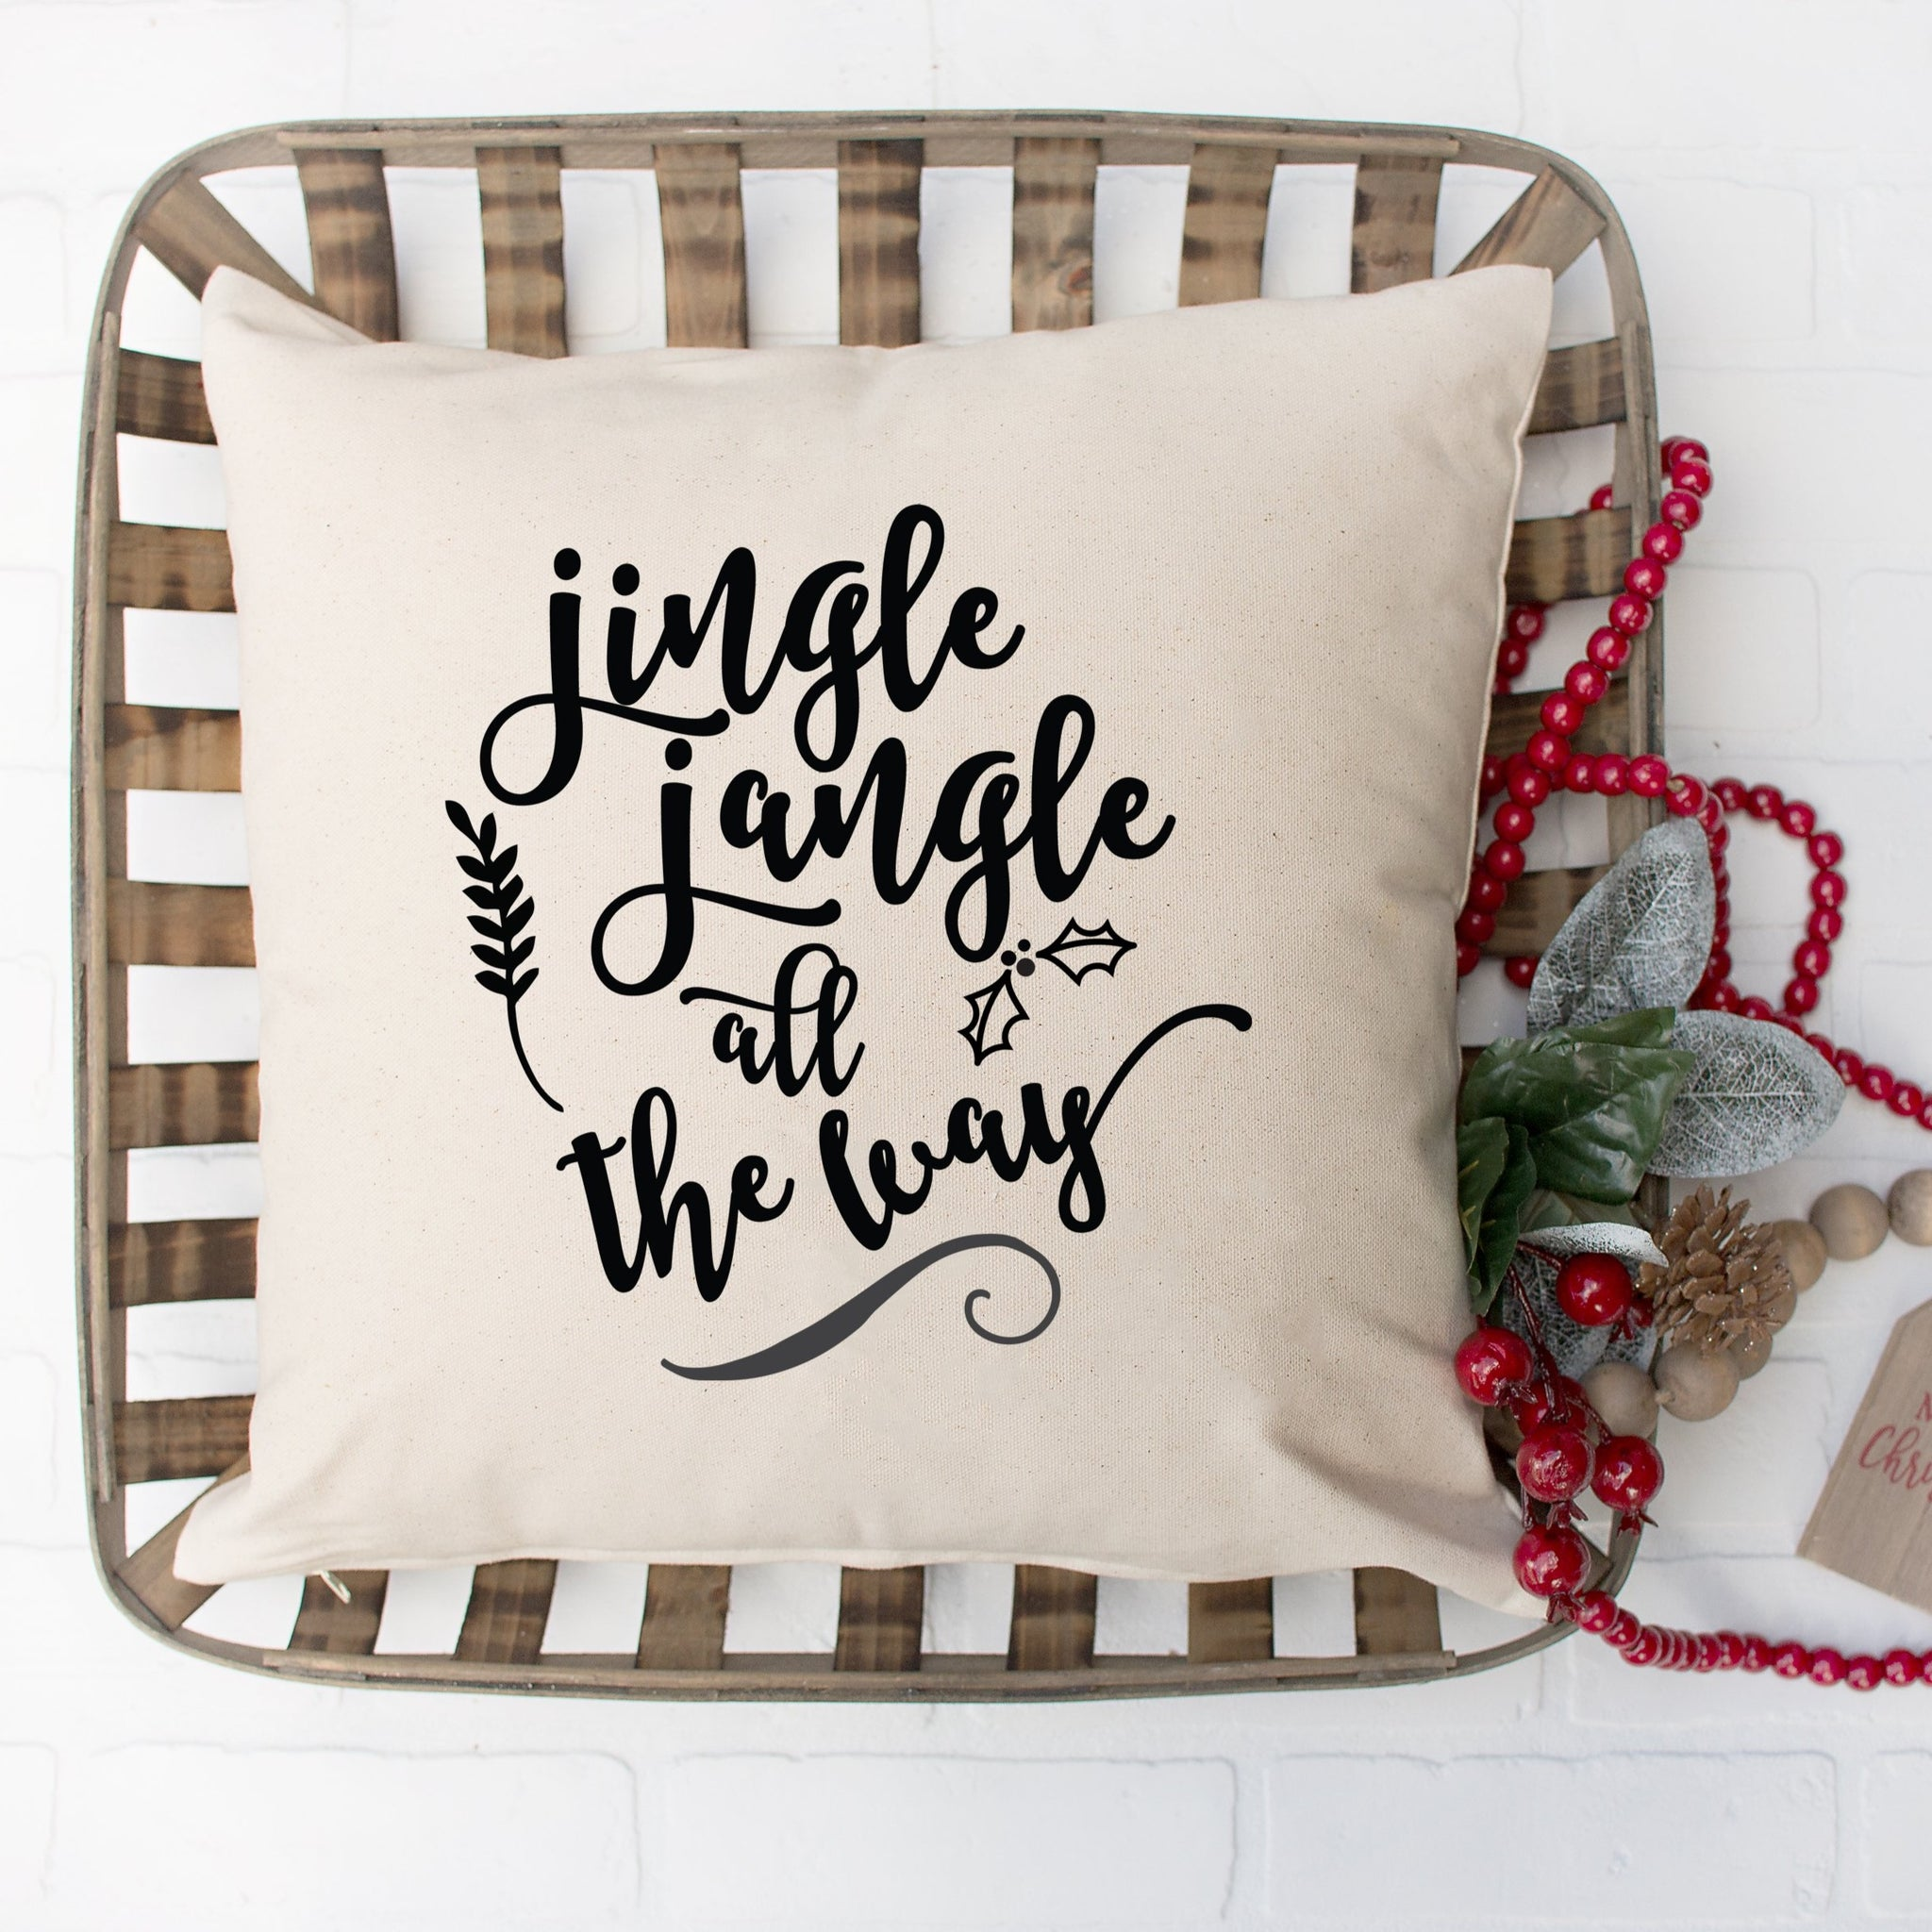 Jingle Jangle All The Way Pillow Cover 15 X15 From Us To You Co